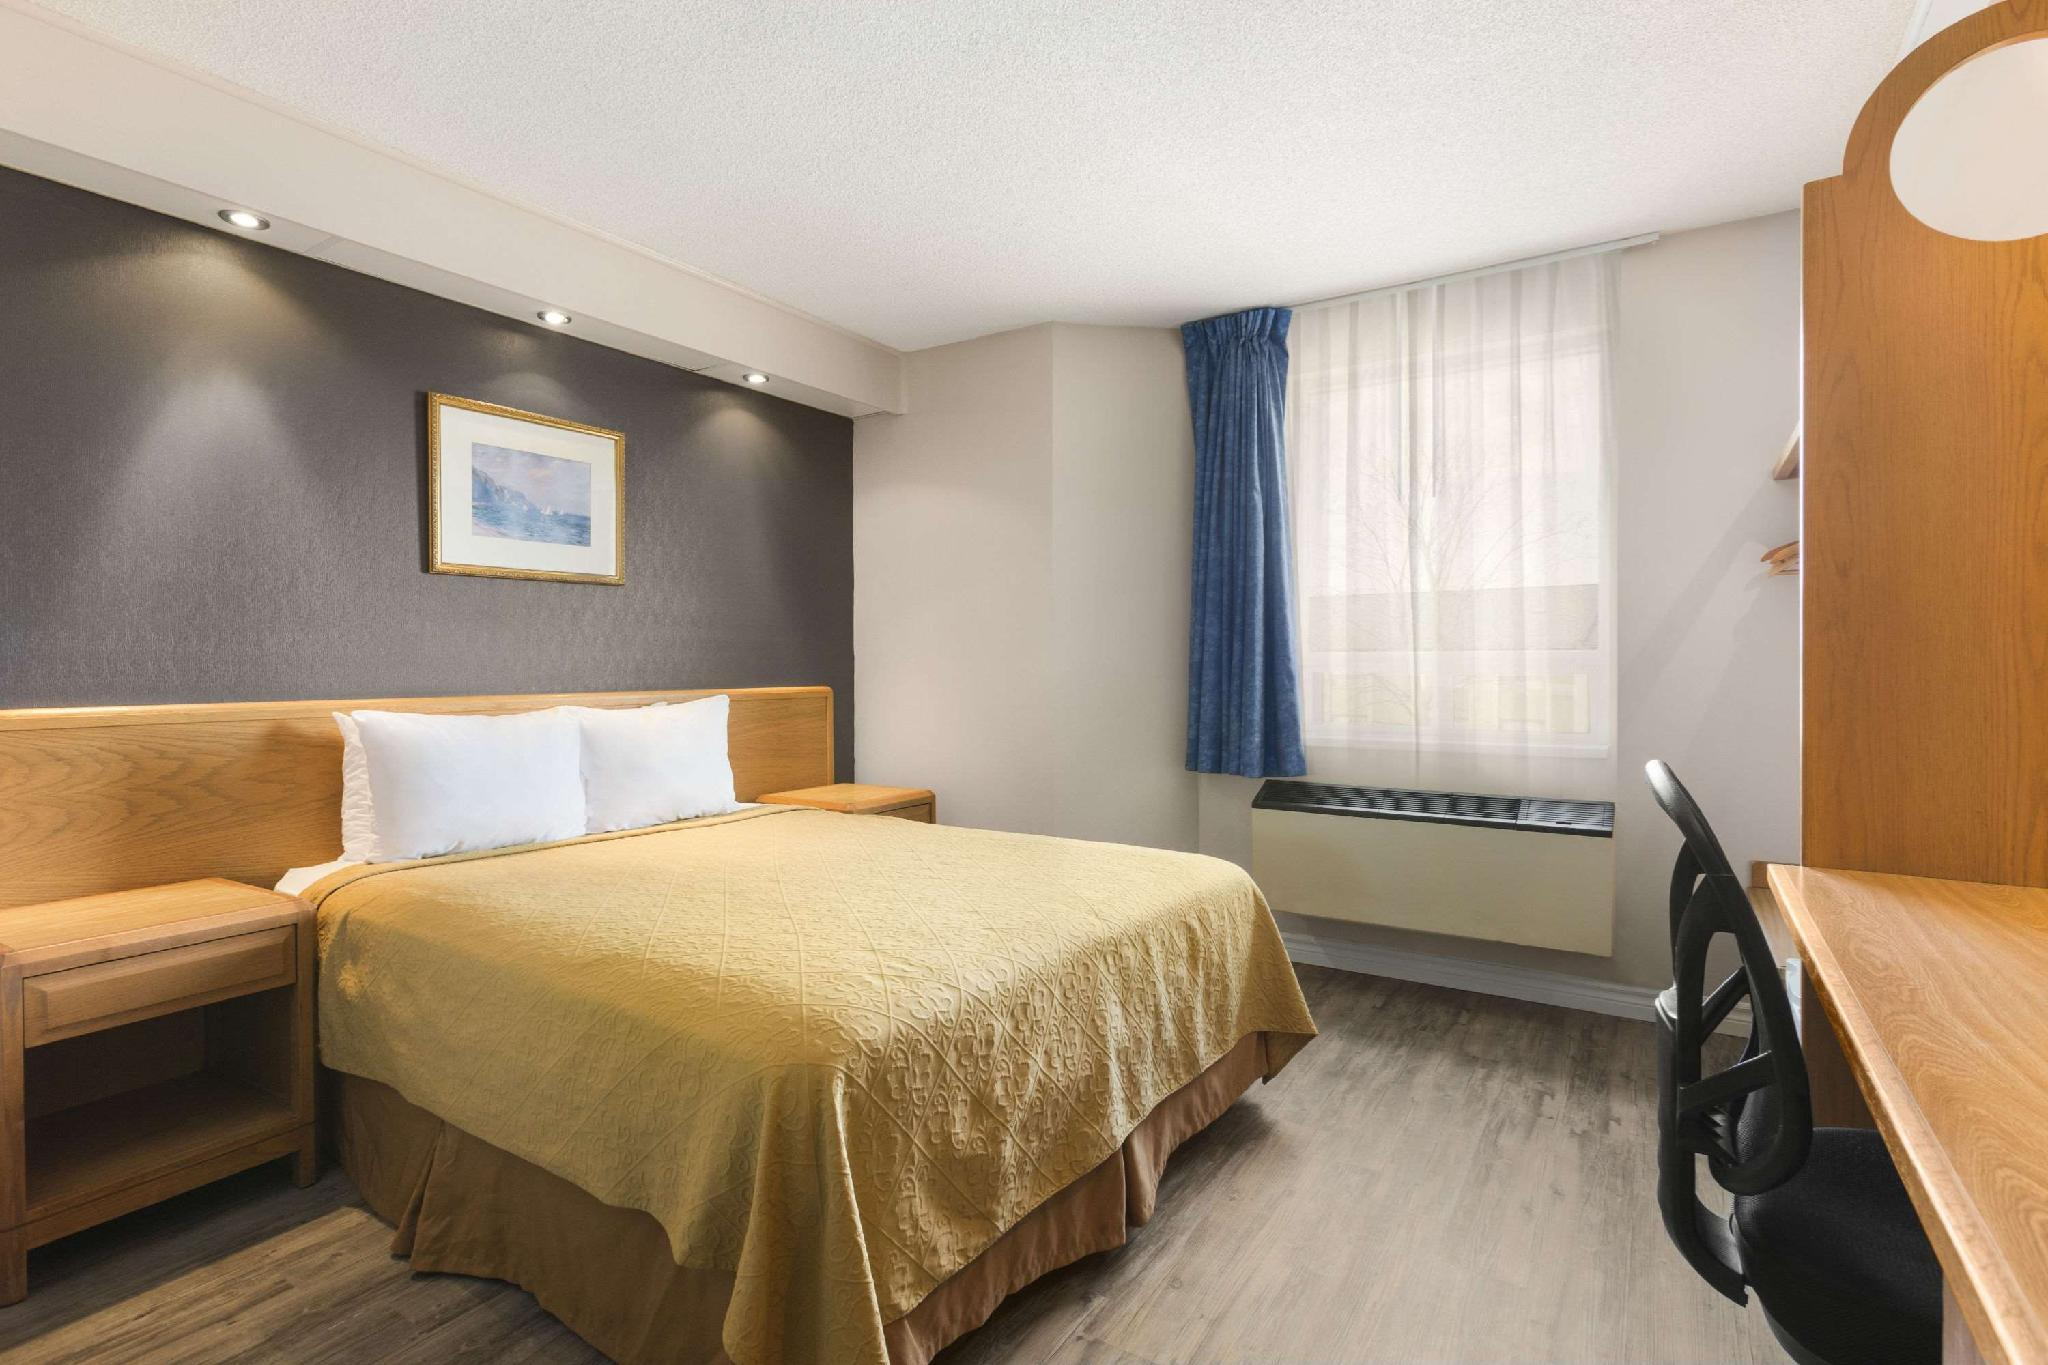 Travelodge by Wyndham Brockville, Leeds and Grenville